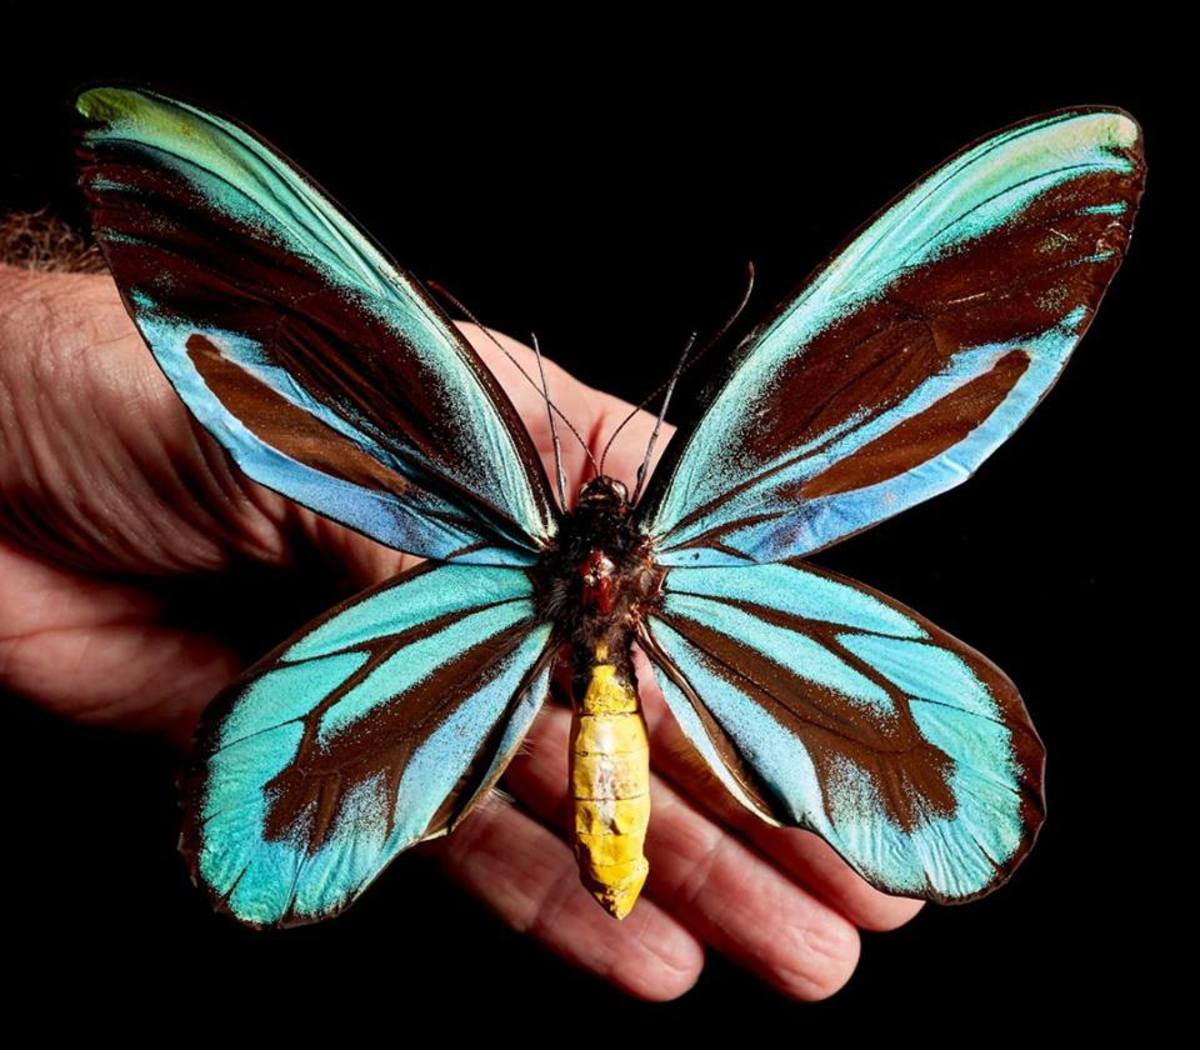 Queen Alexandra's Birdwing is a species of endangered butterfly that is illegal to international trade.